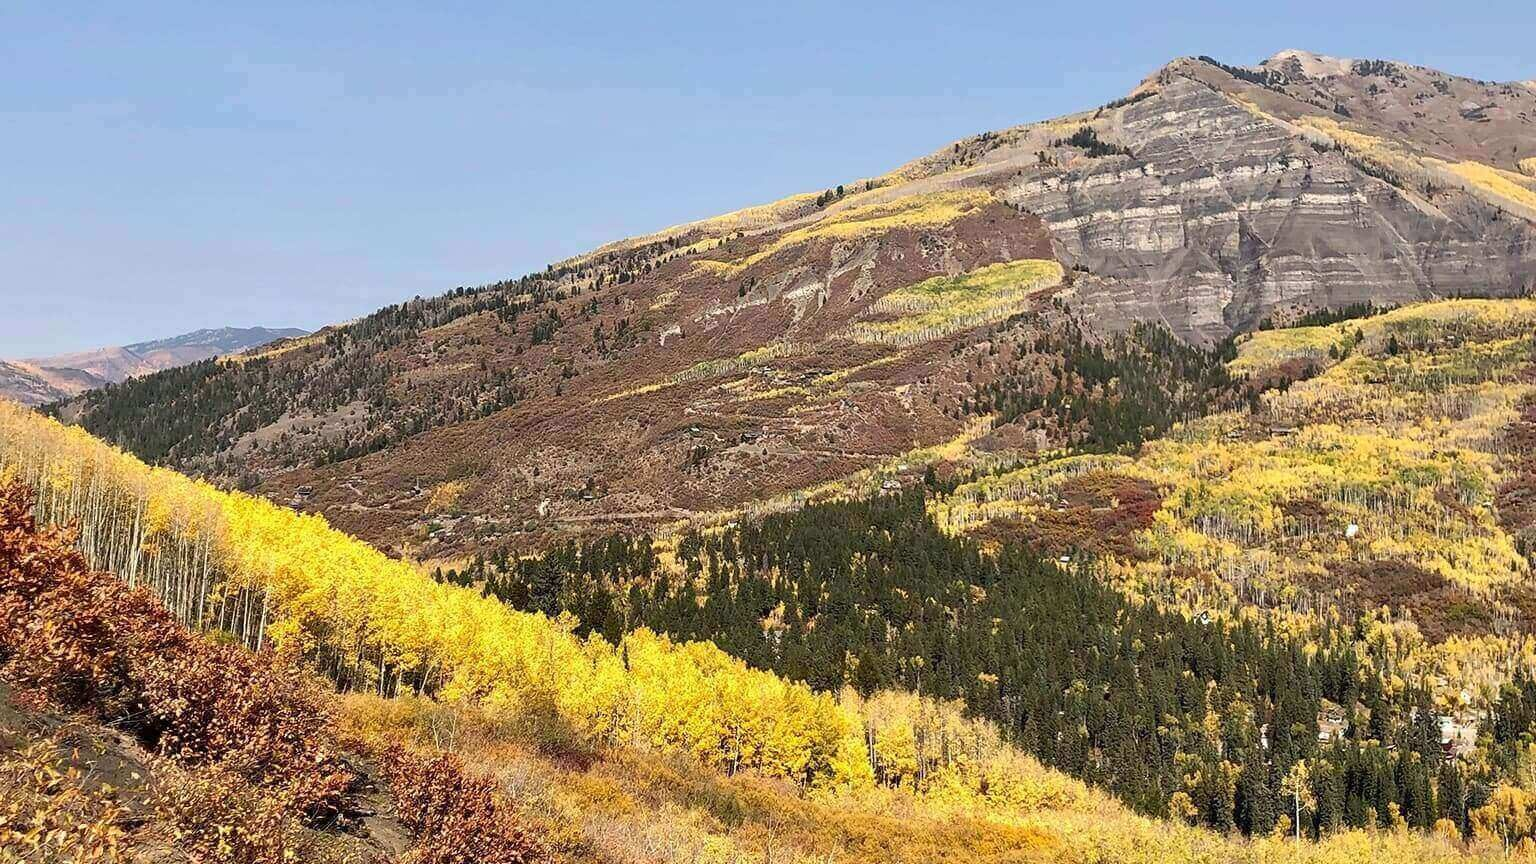 High alpine leaf peeping of Aspen groves outside of Carbondale, Colorado